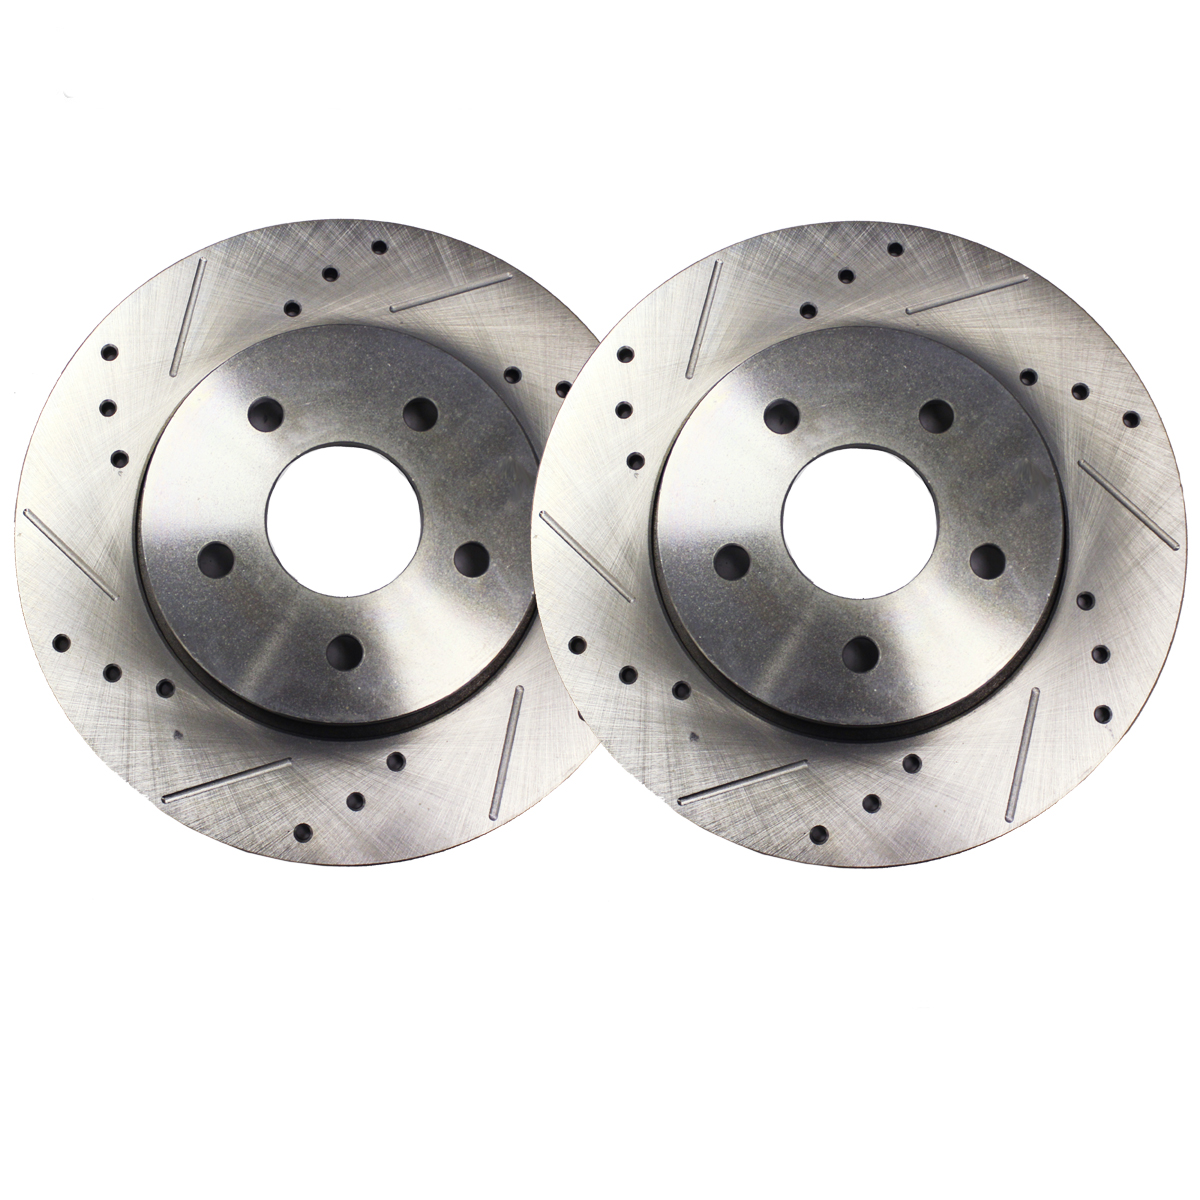 Front Drilled and Slotted Brake Rotors #S-31311- Acura & Honda